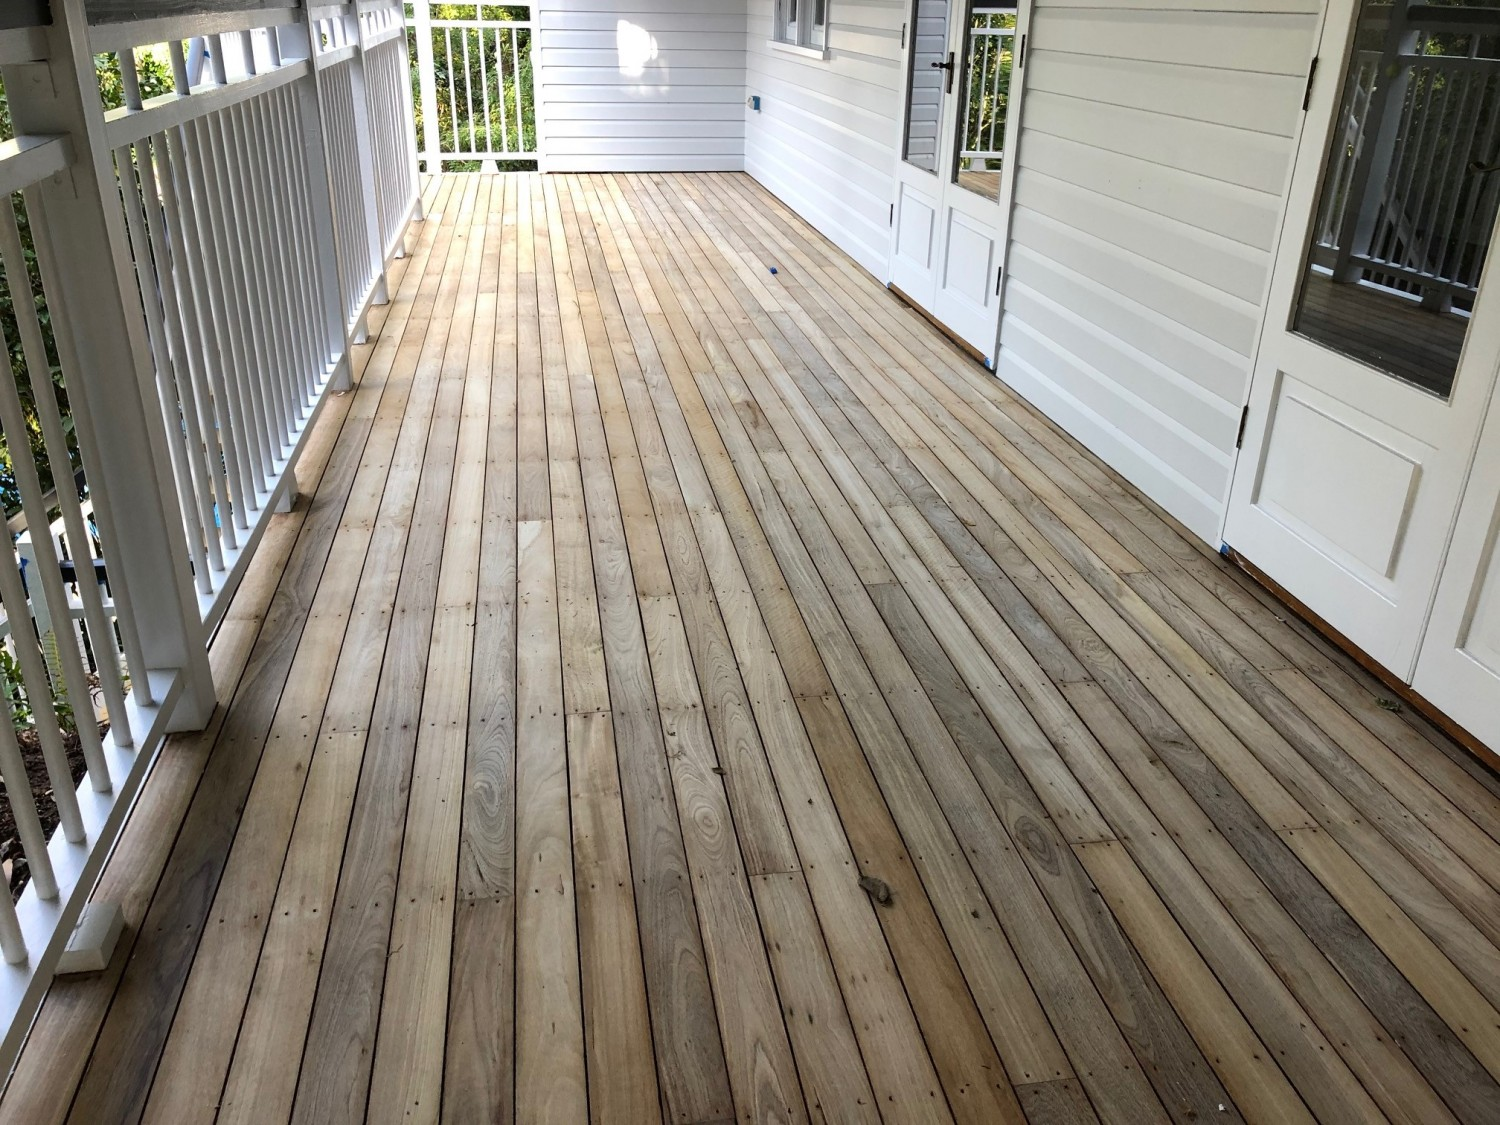 Jarrah decking bleached with LiteniT wood bleach